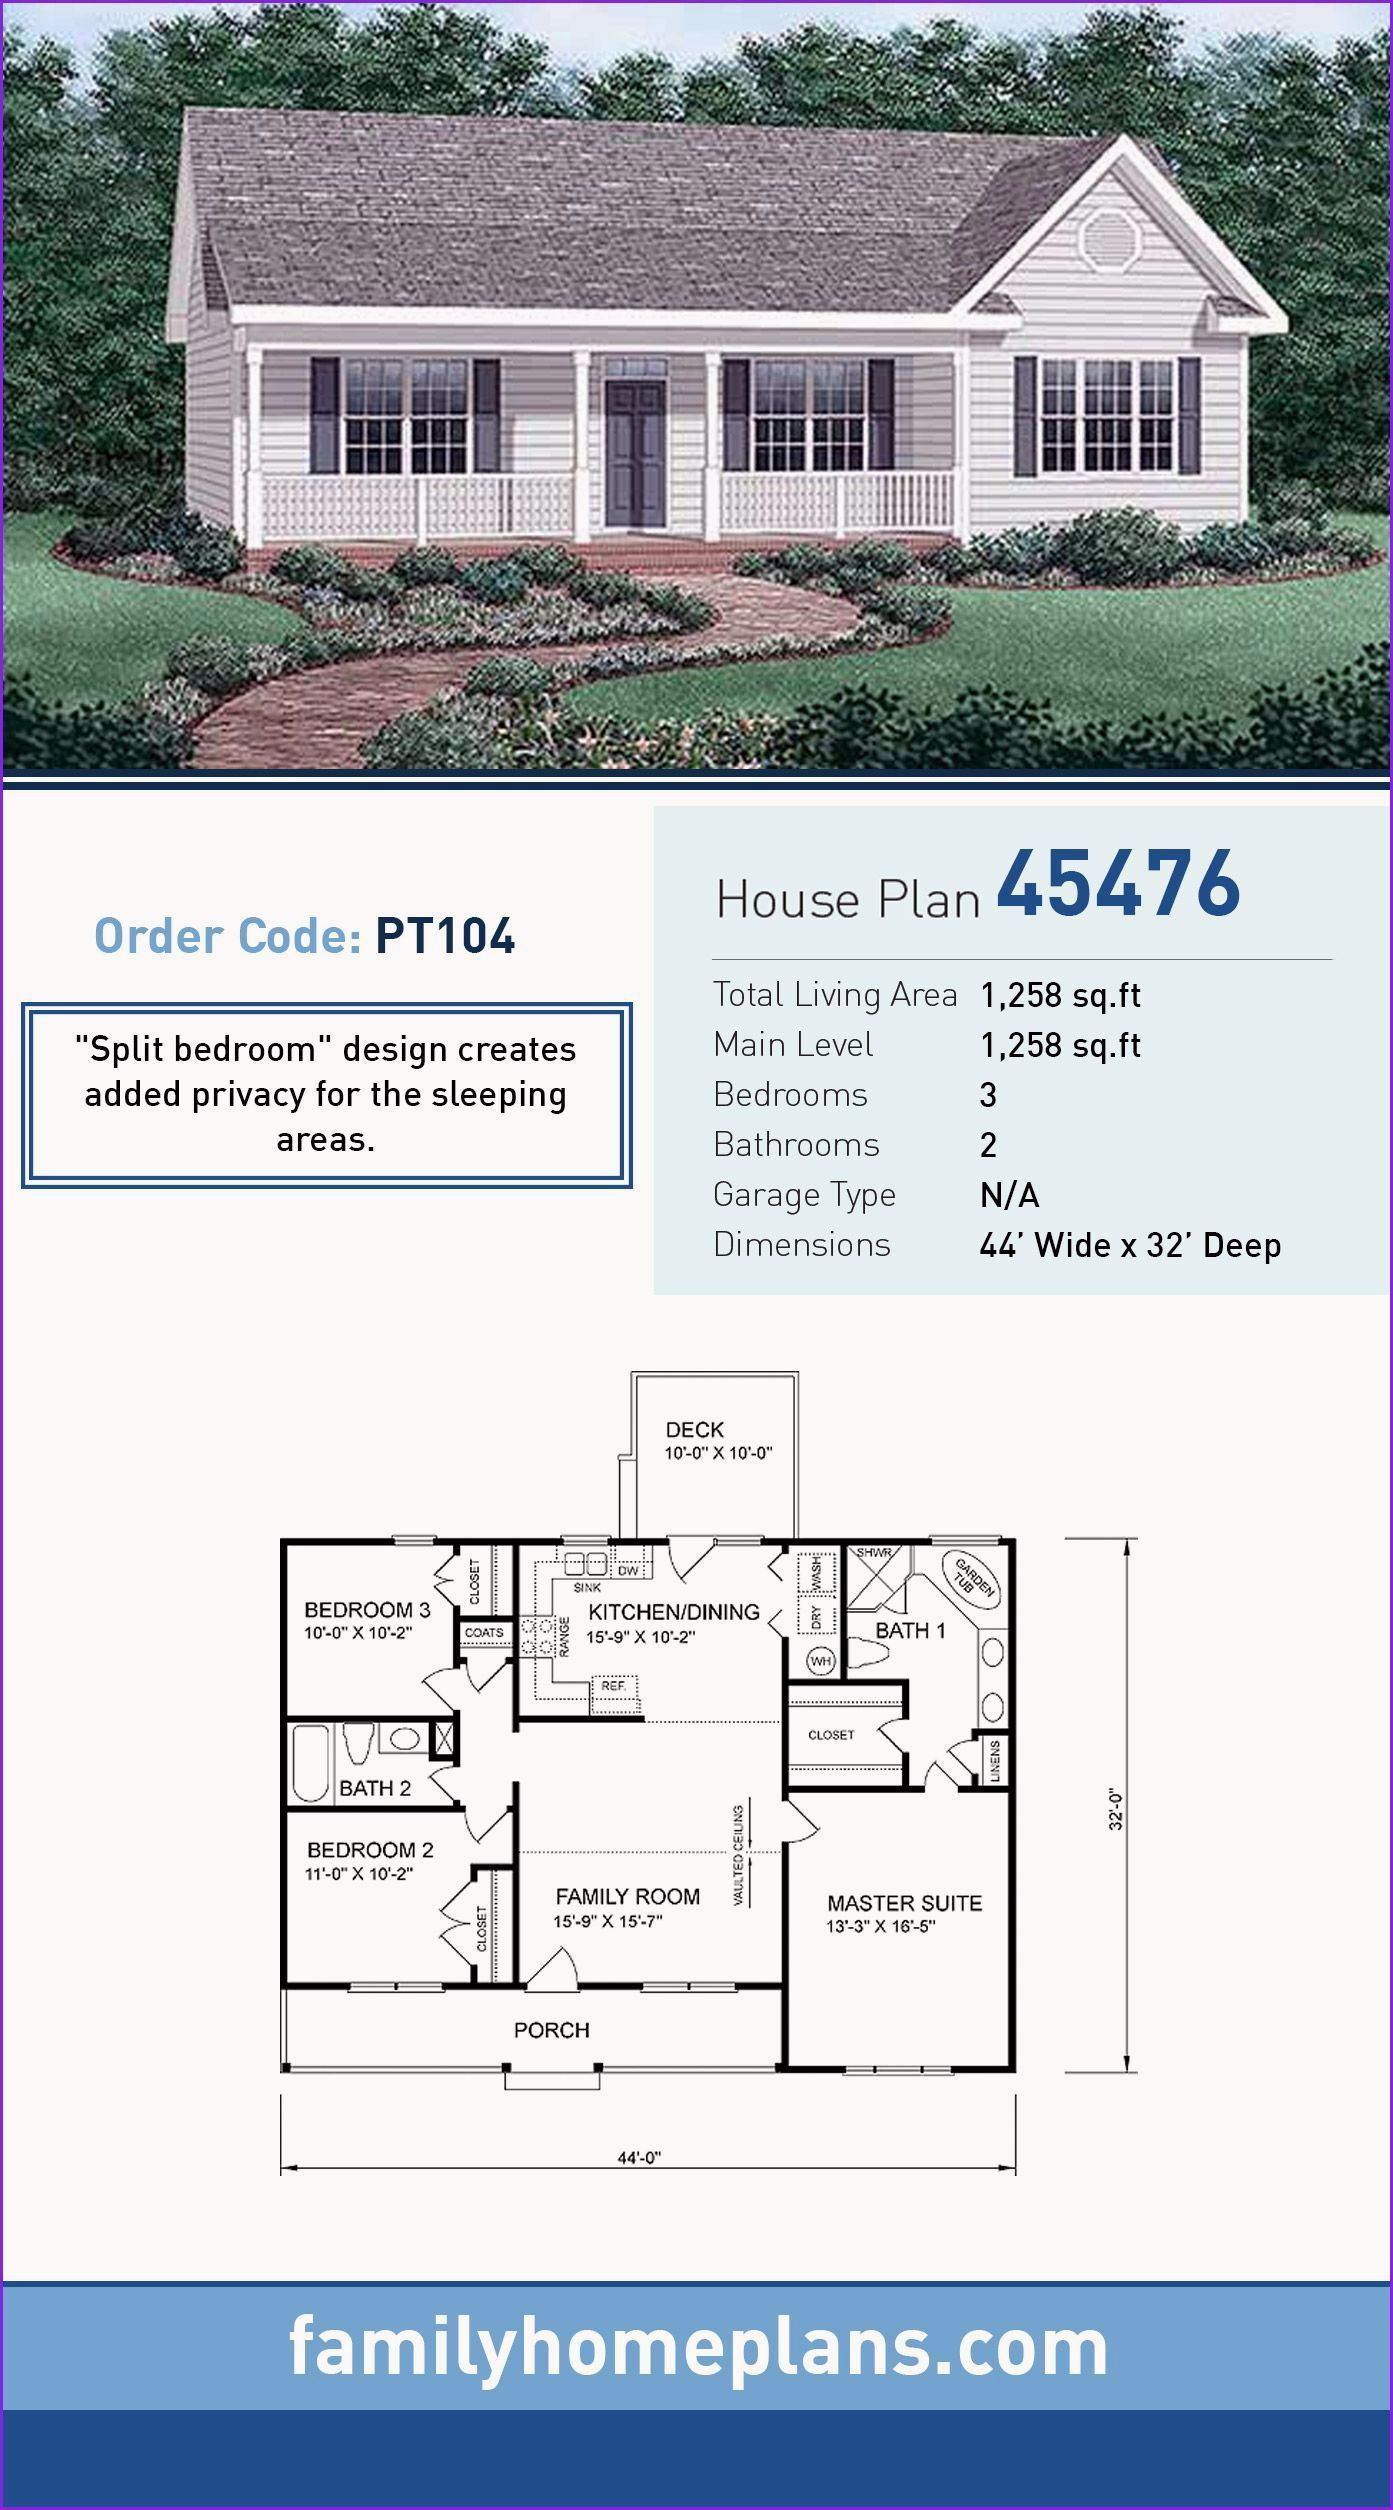 Awesome Cost To Build 1000 Sq Ft House Cost To Build 1000 Sq Ft House Awesome Cost To Build 100 In 2020 Country Style House Plans House Blueprints Ranch House Plans